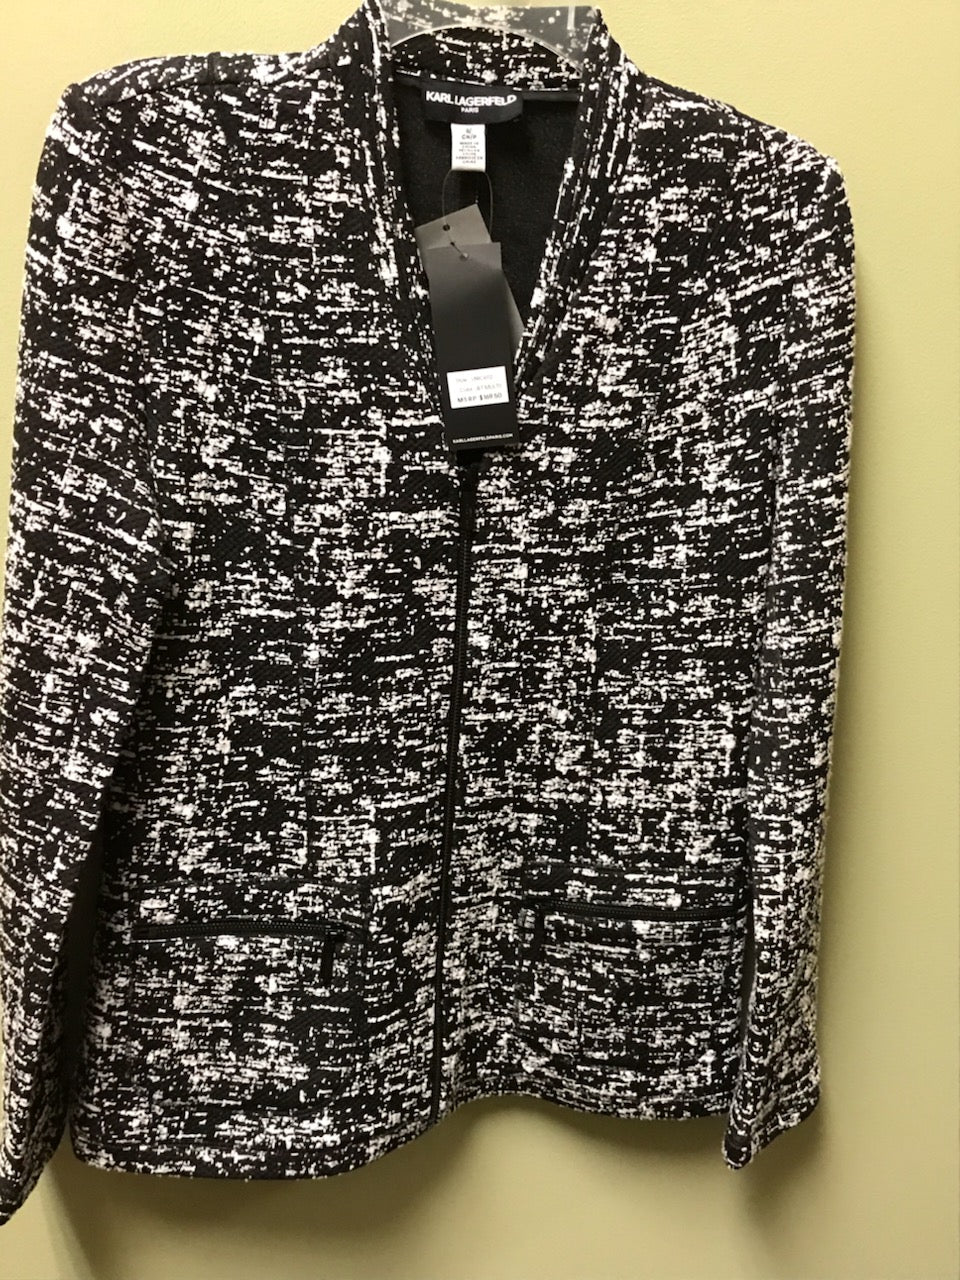 Karl Lagerfield NEW black/white jacket, size S